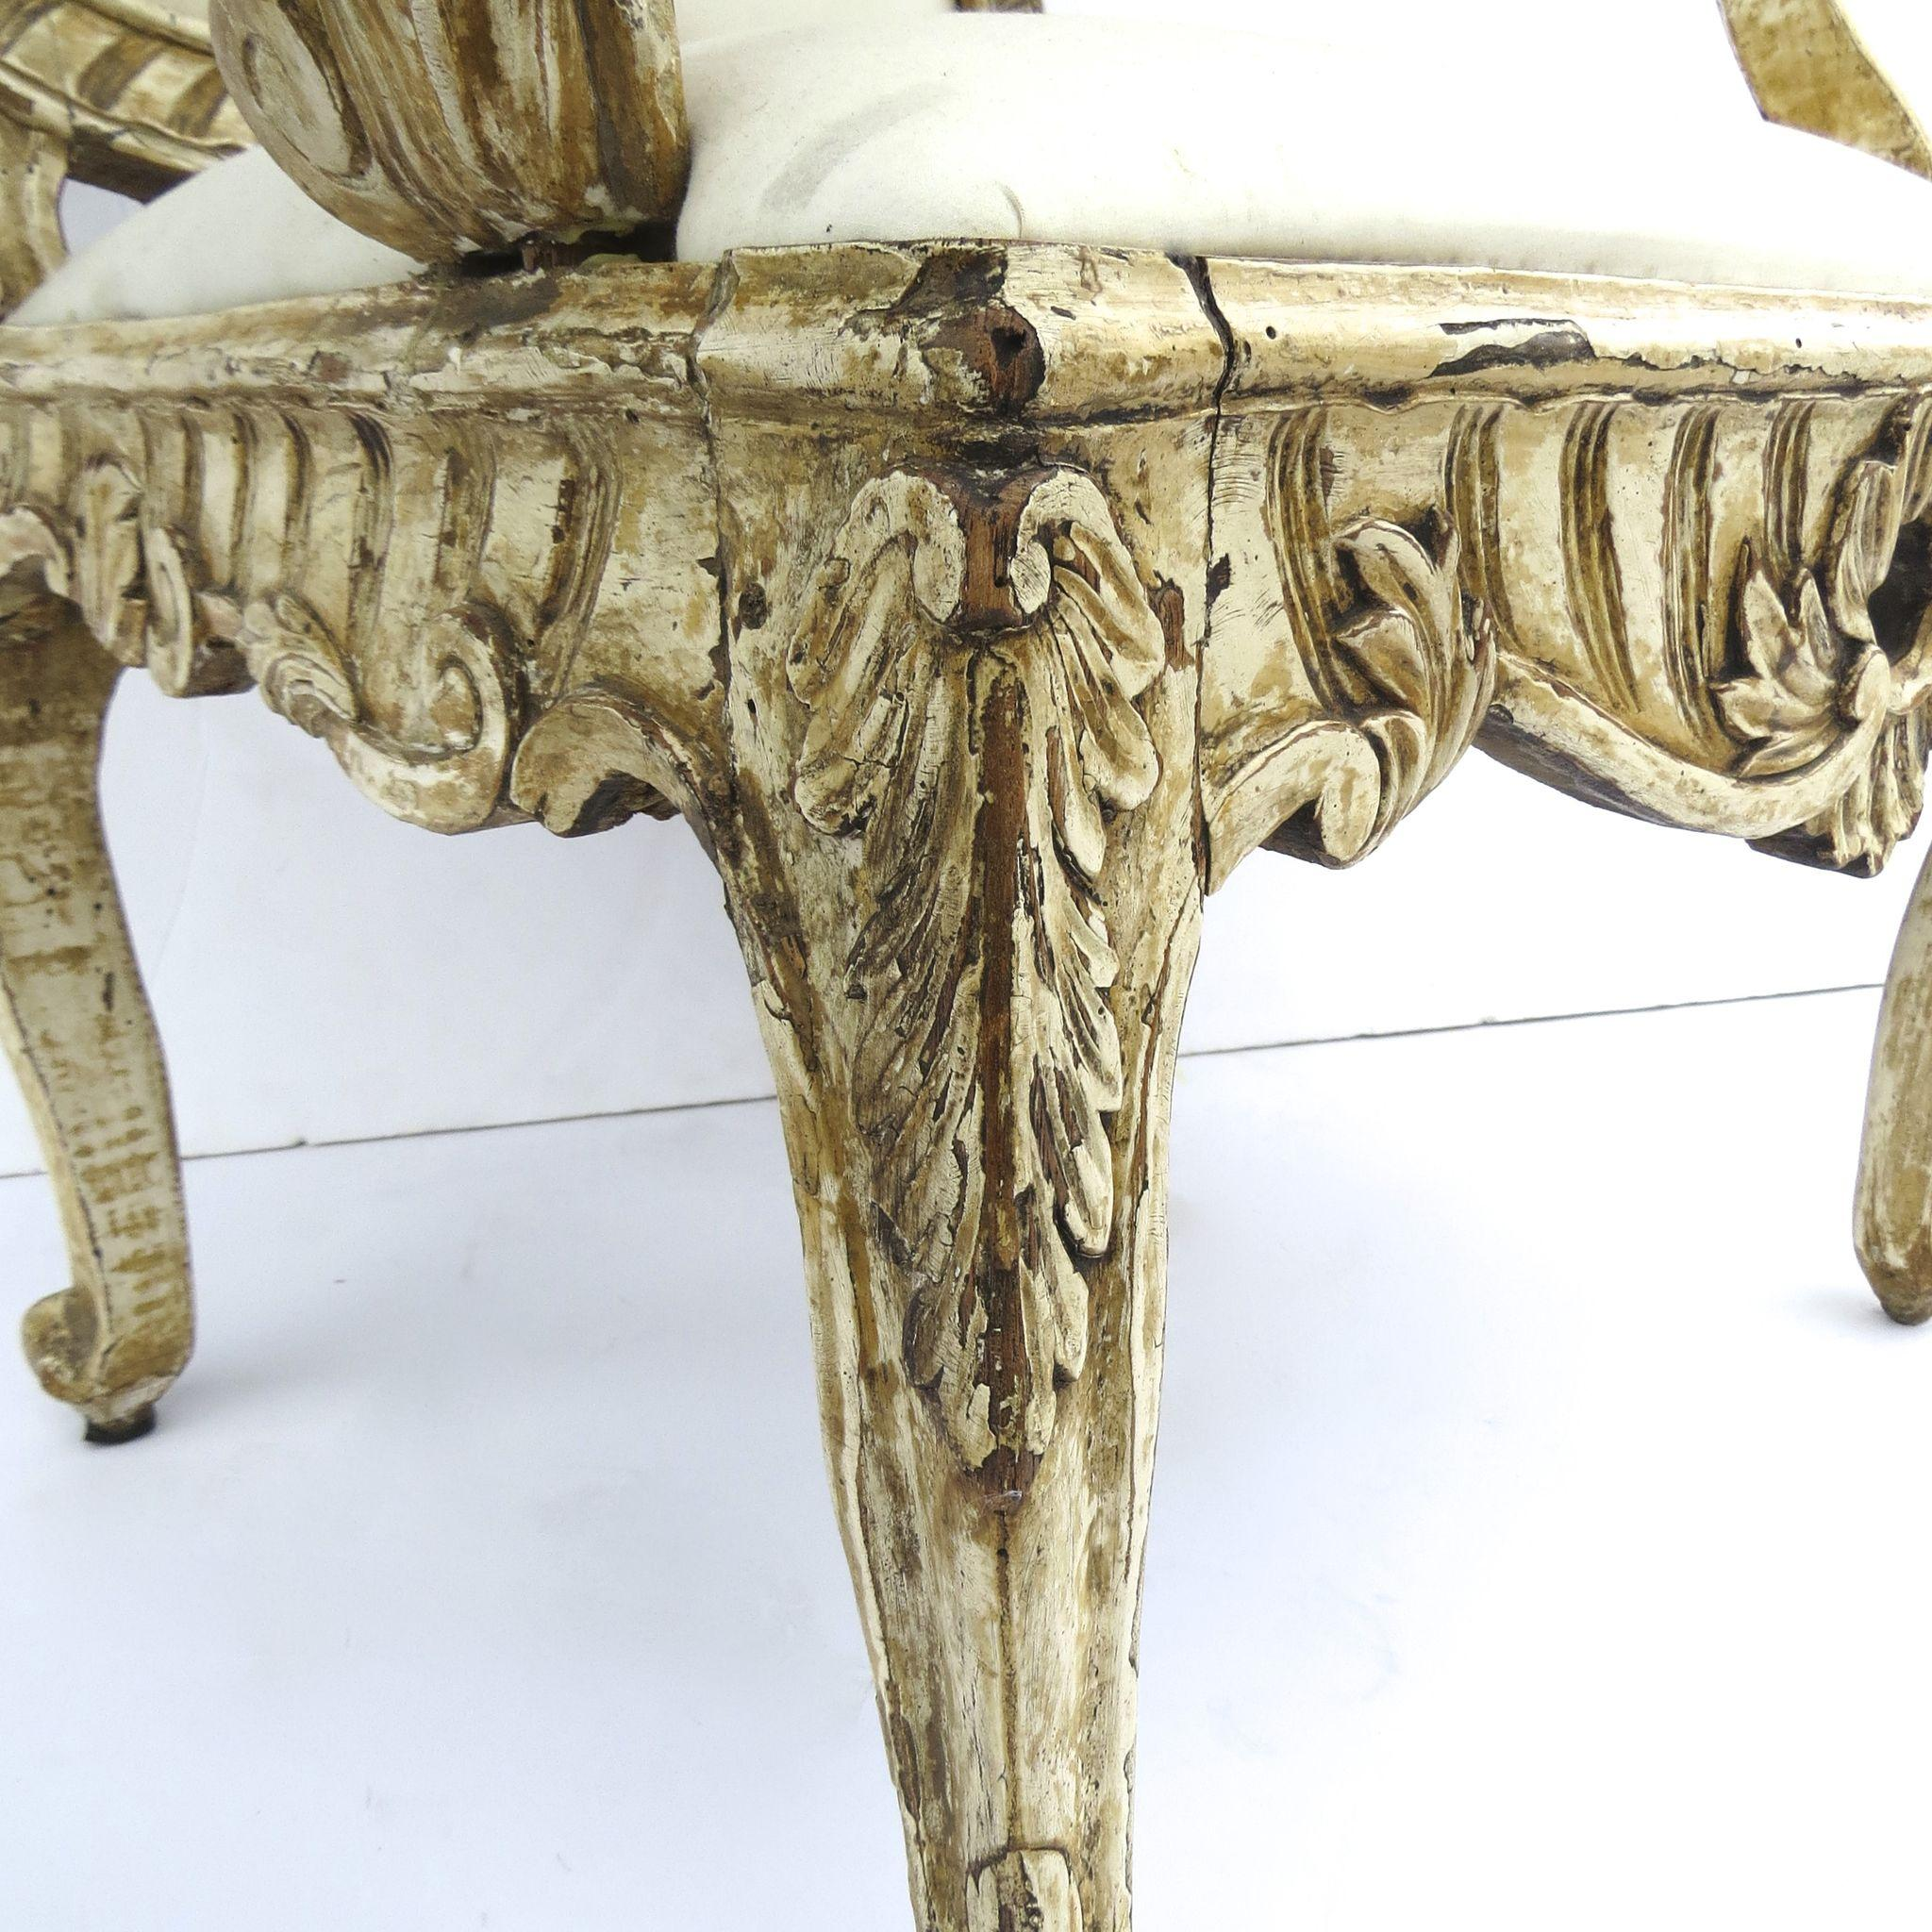 Mid 18th Century Italian Palazzo Rococo carved armchair from